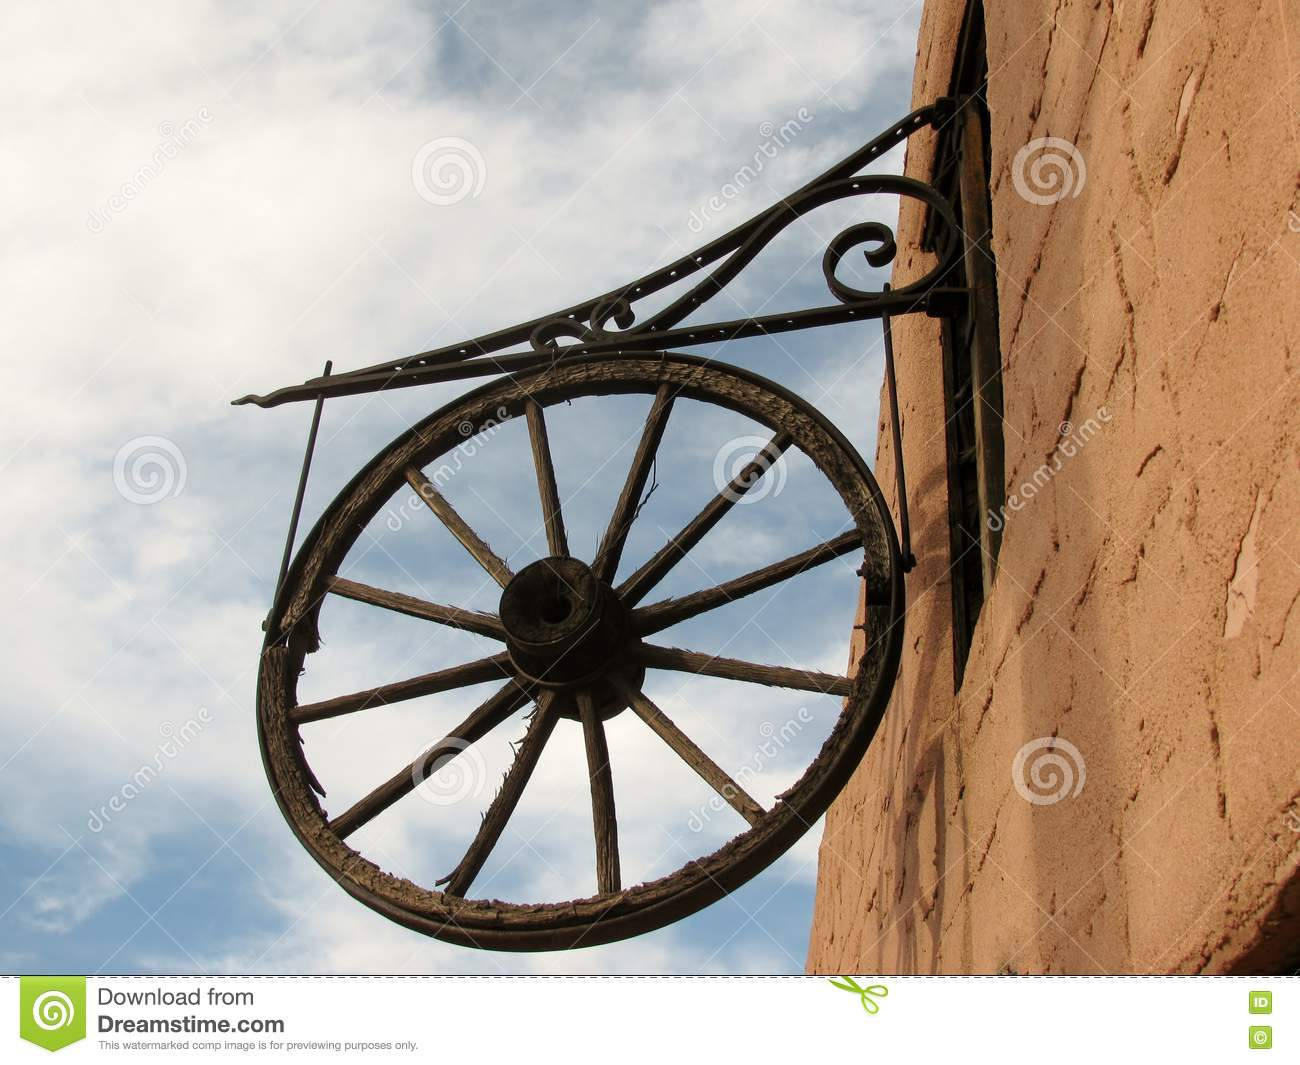 Wagon Wheel Wall Decor antique wooden wagon wheel hanging on a wall as a decoration